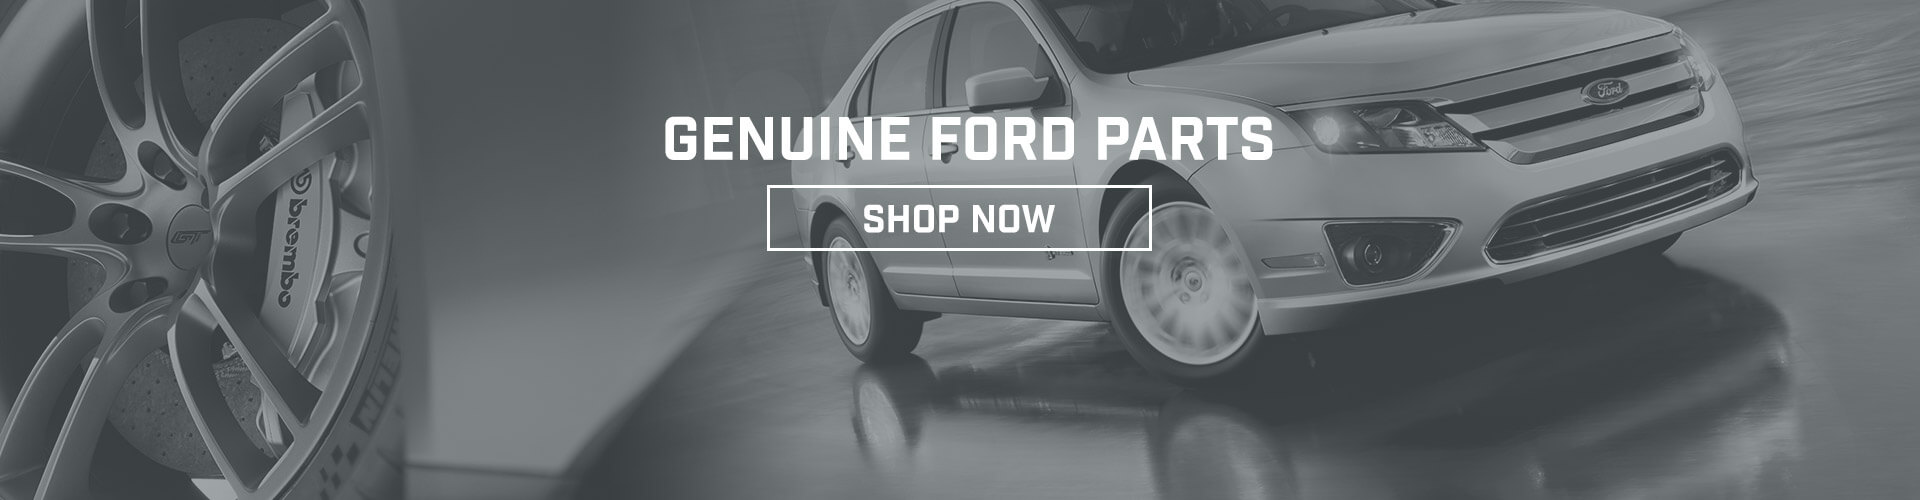 OEM Ford parts